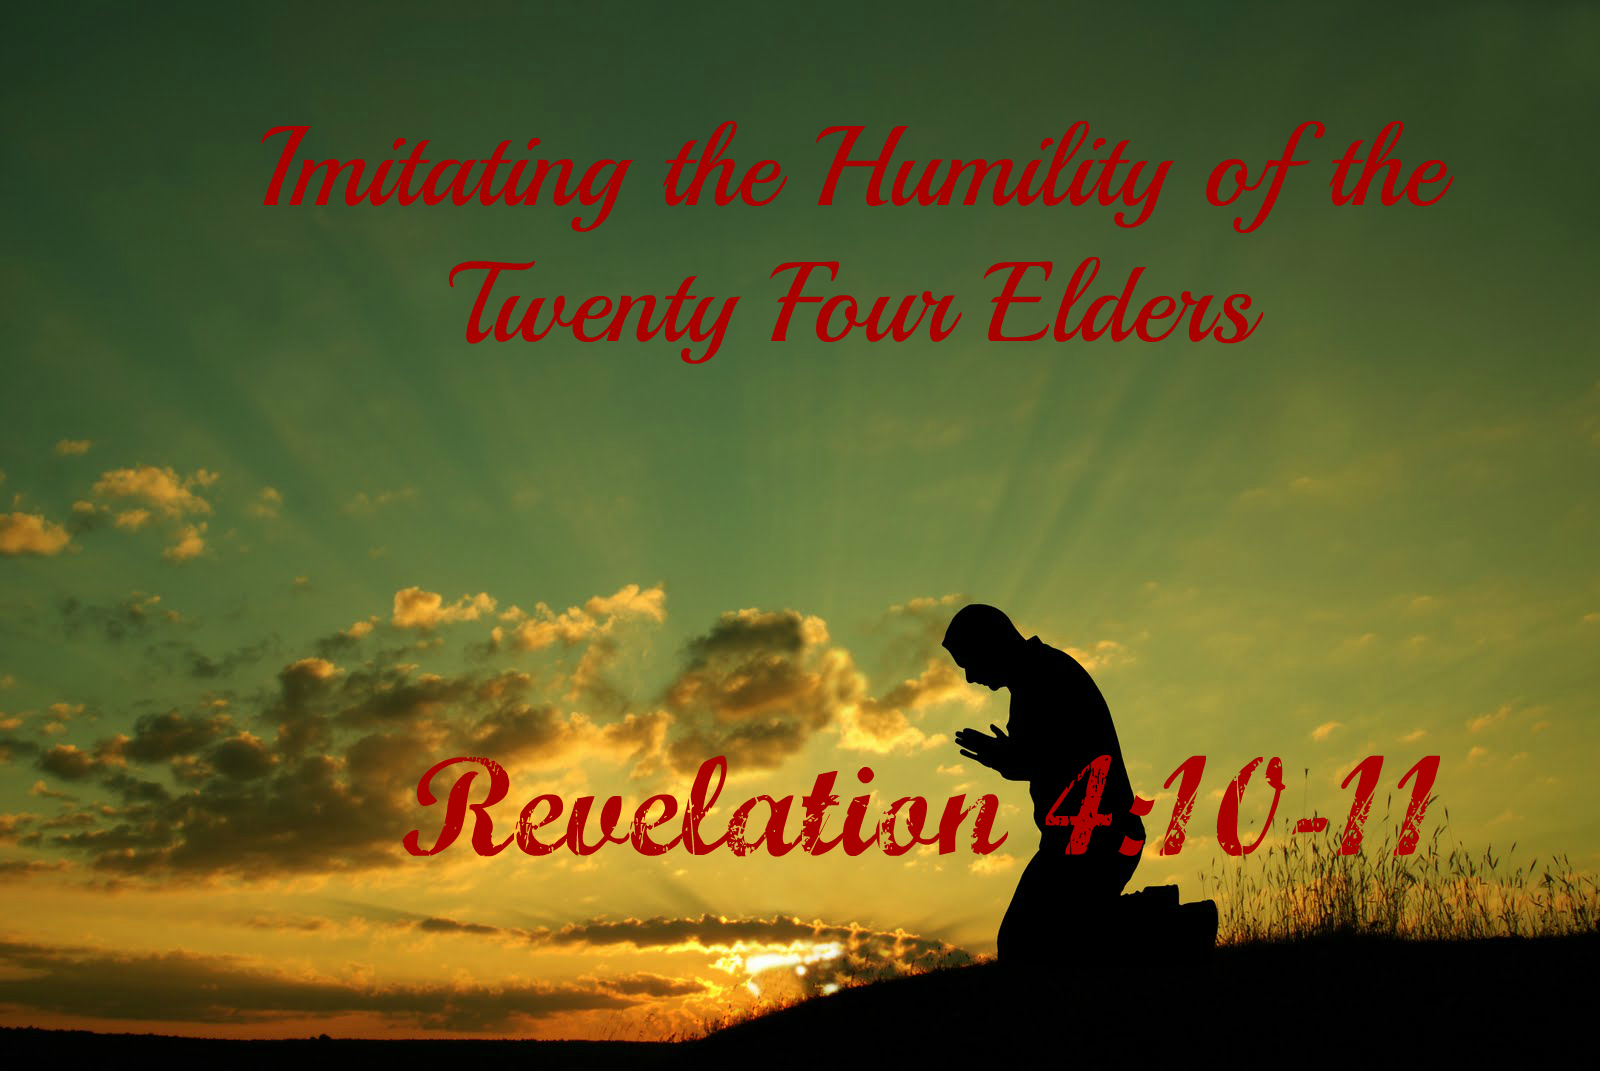 Twenty Four Elders Humility